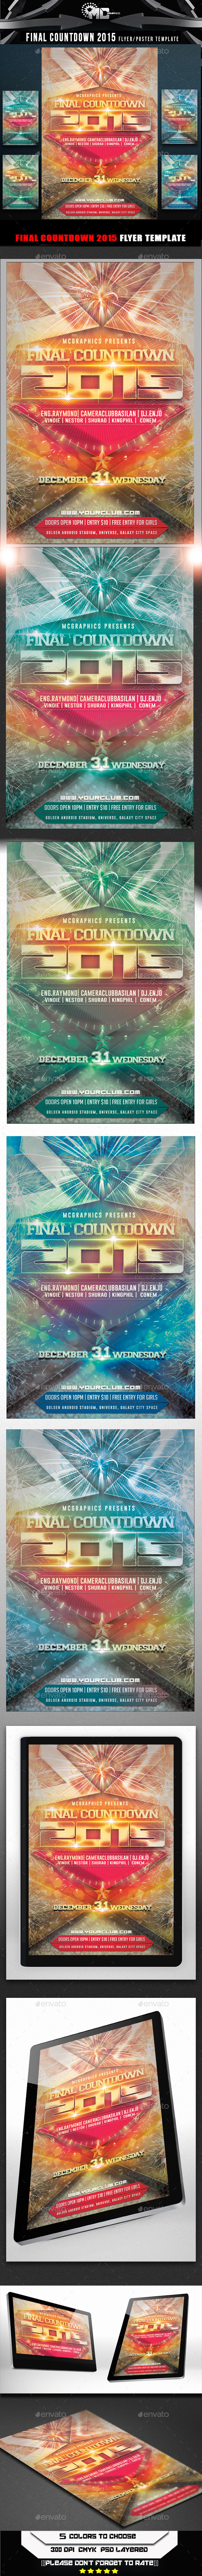 GraphicRiver Final Countdown 2015 Flyer Template 9581615